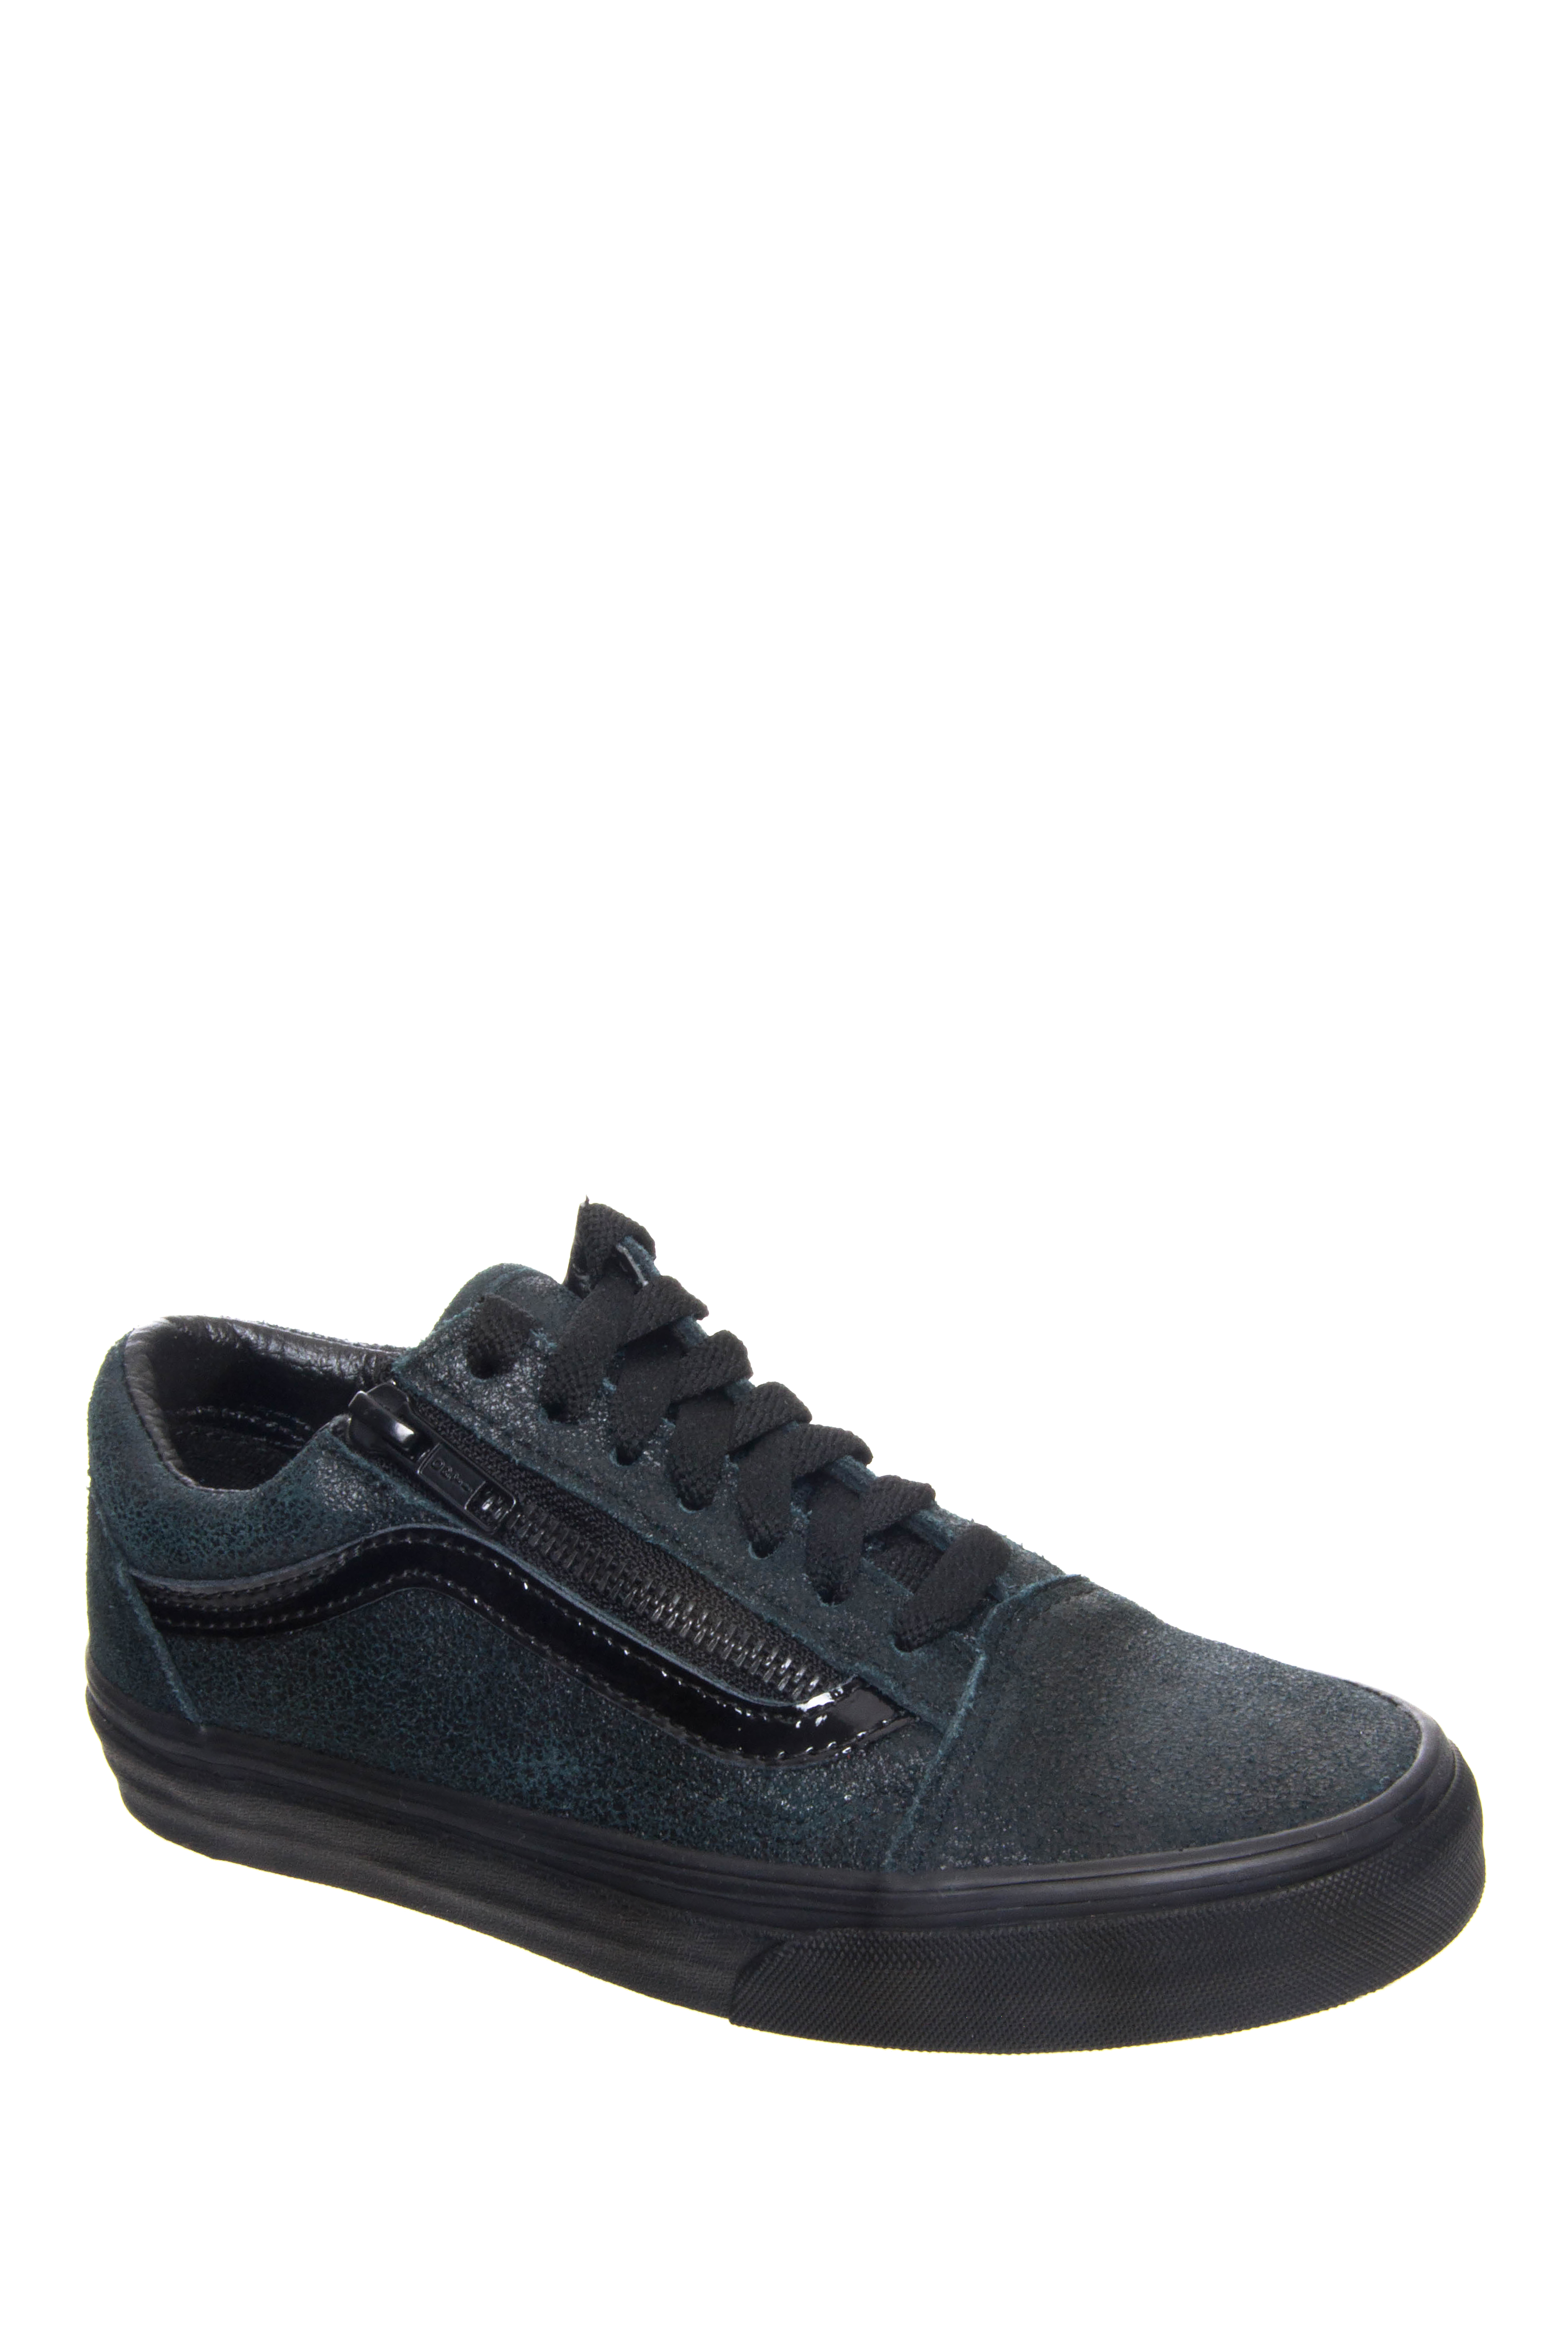 VANS Unisex Old Skool Zip Patent Low Top Sneakers - Black / Black